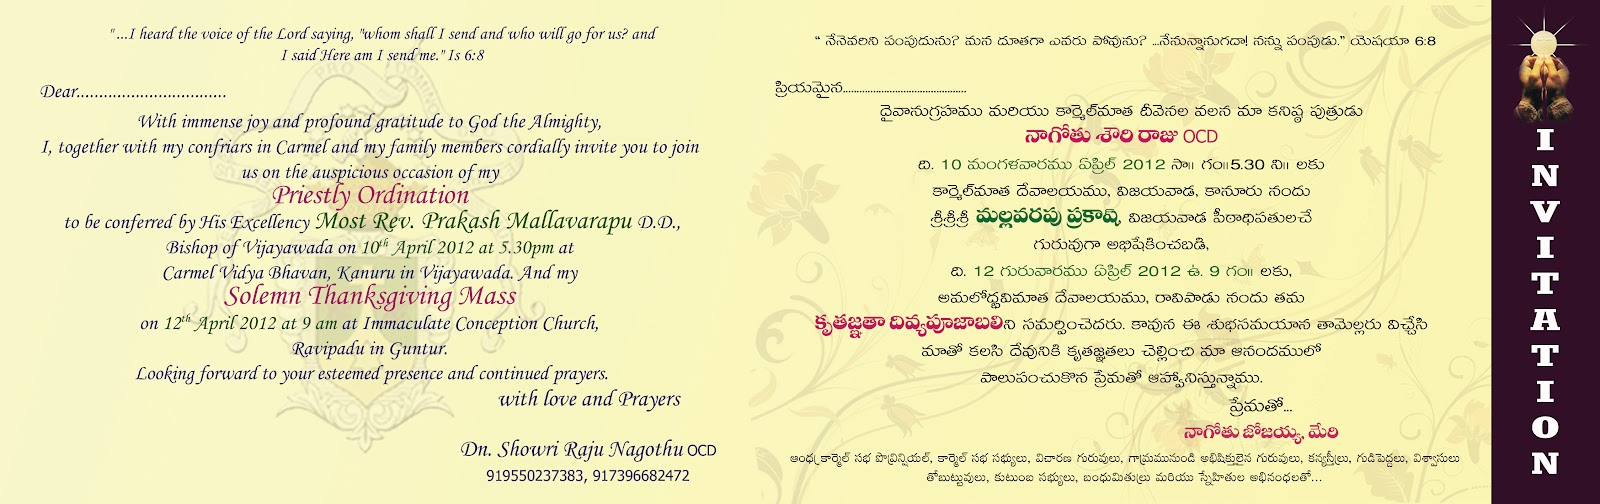 Telugu Sangham Rome Italy Invitation to Priestly Ordination